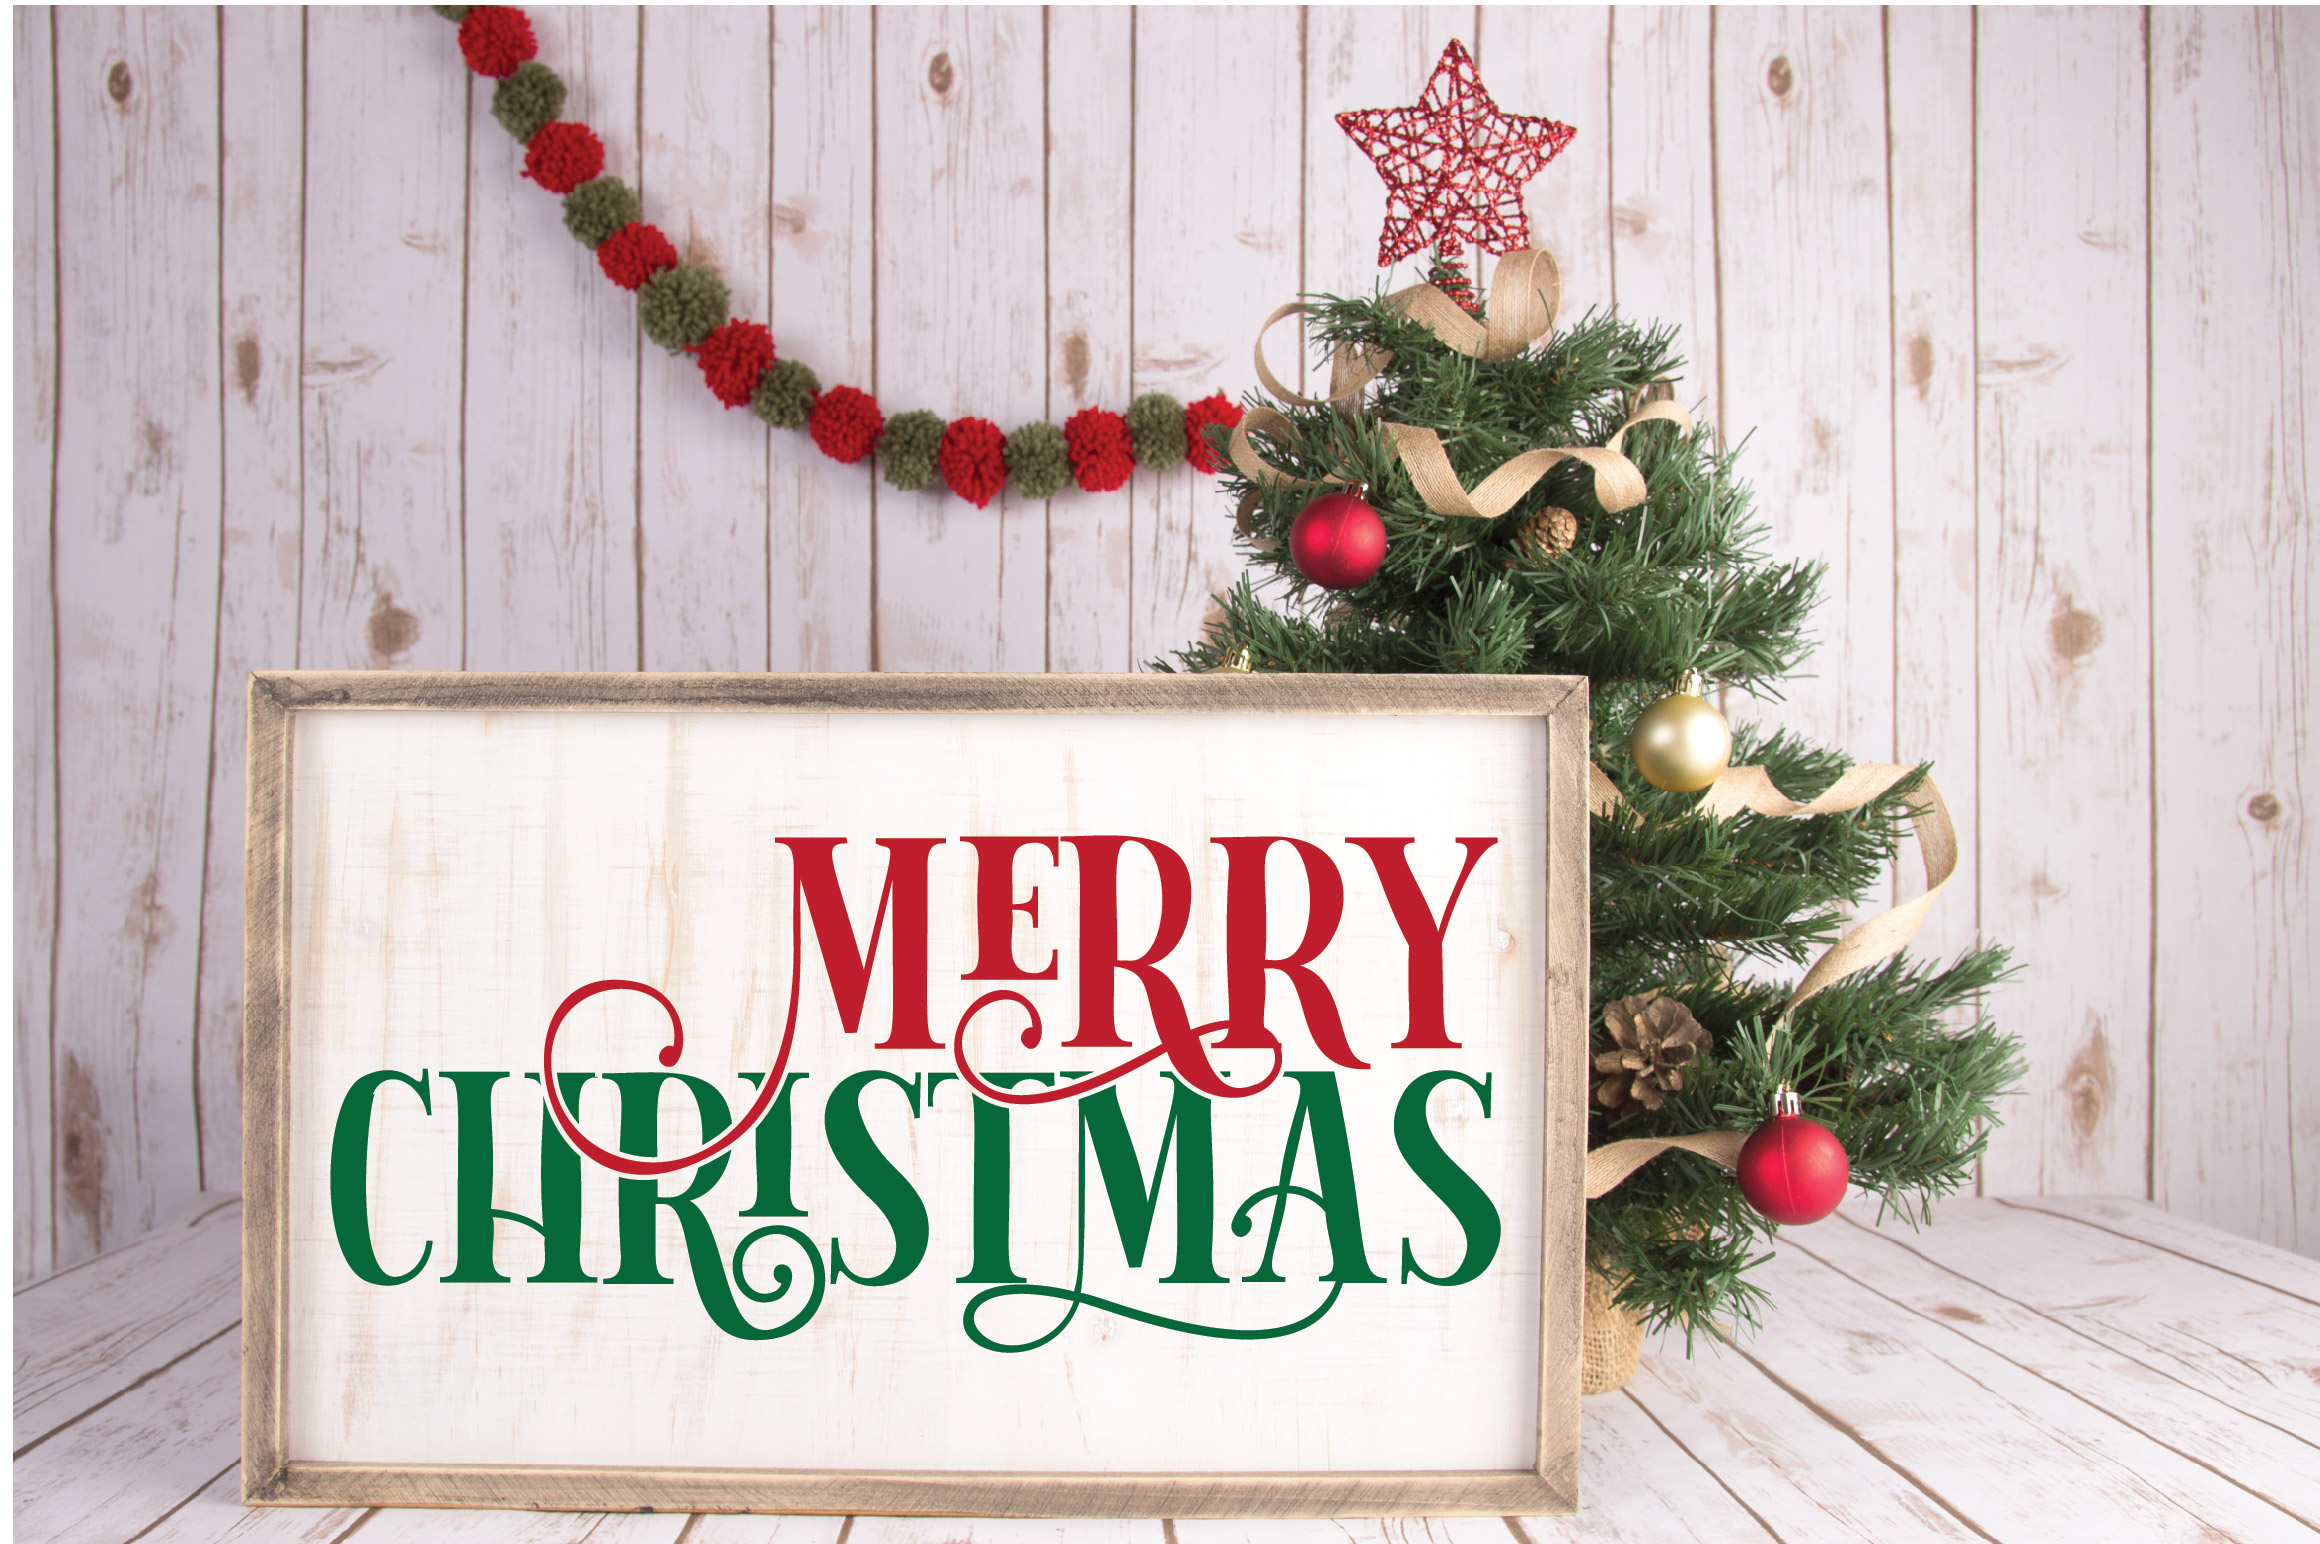 Merry Christmas SVG Cut File example image 3